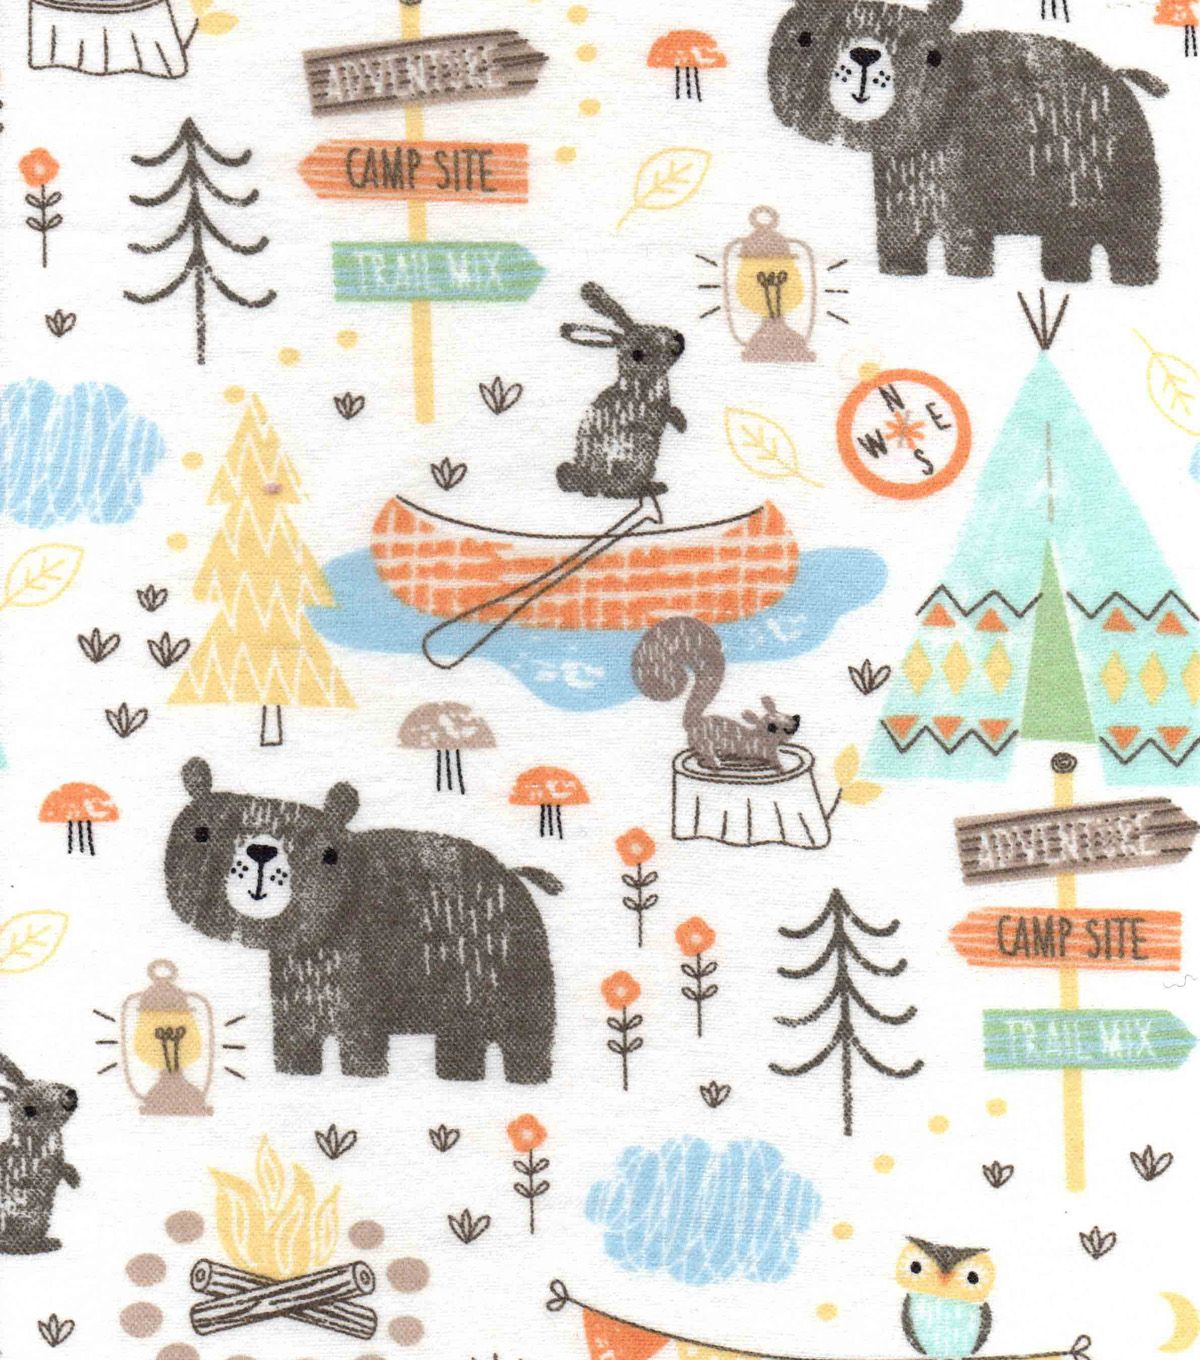 Snuggle Flannel Fabric Camping Mix Camping Fabric Flannel Fabric Camping Quilt